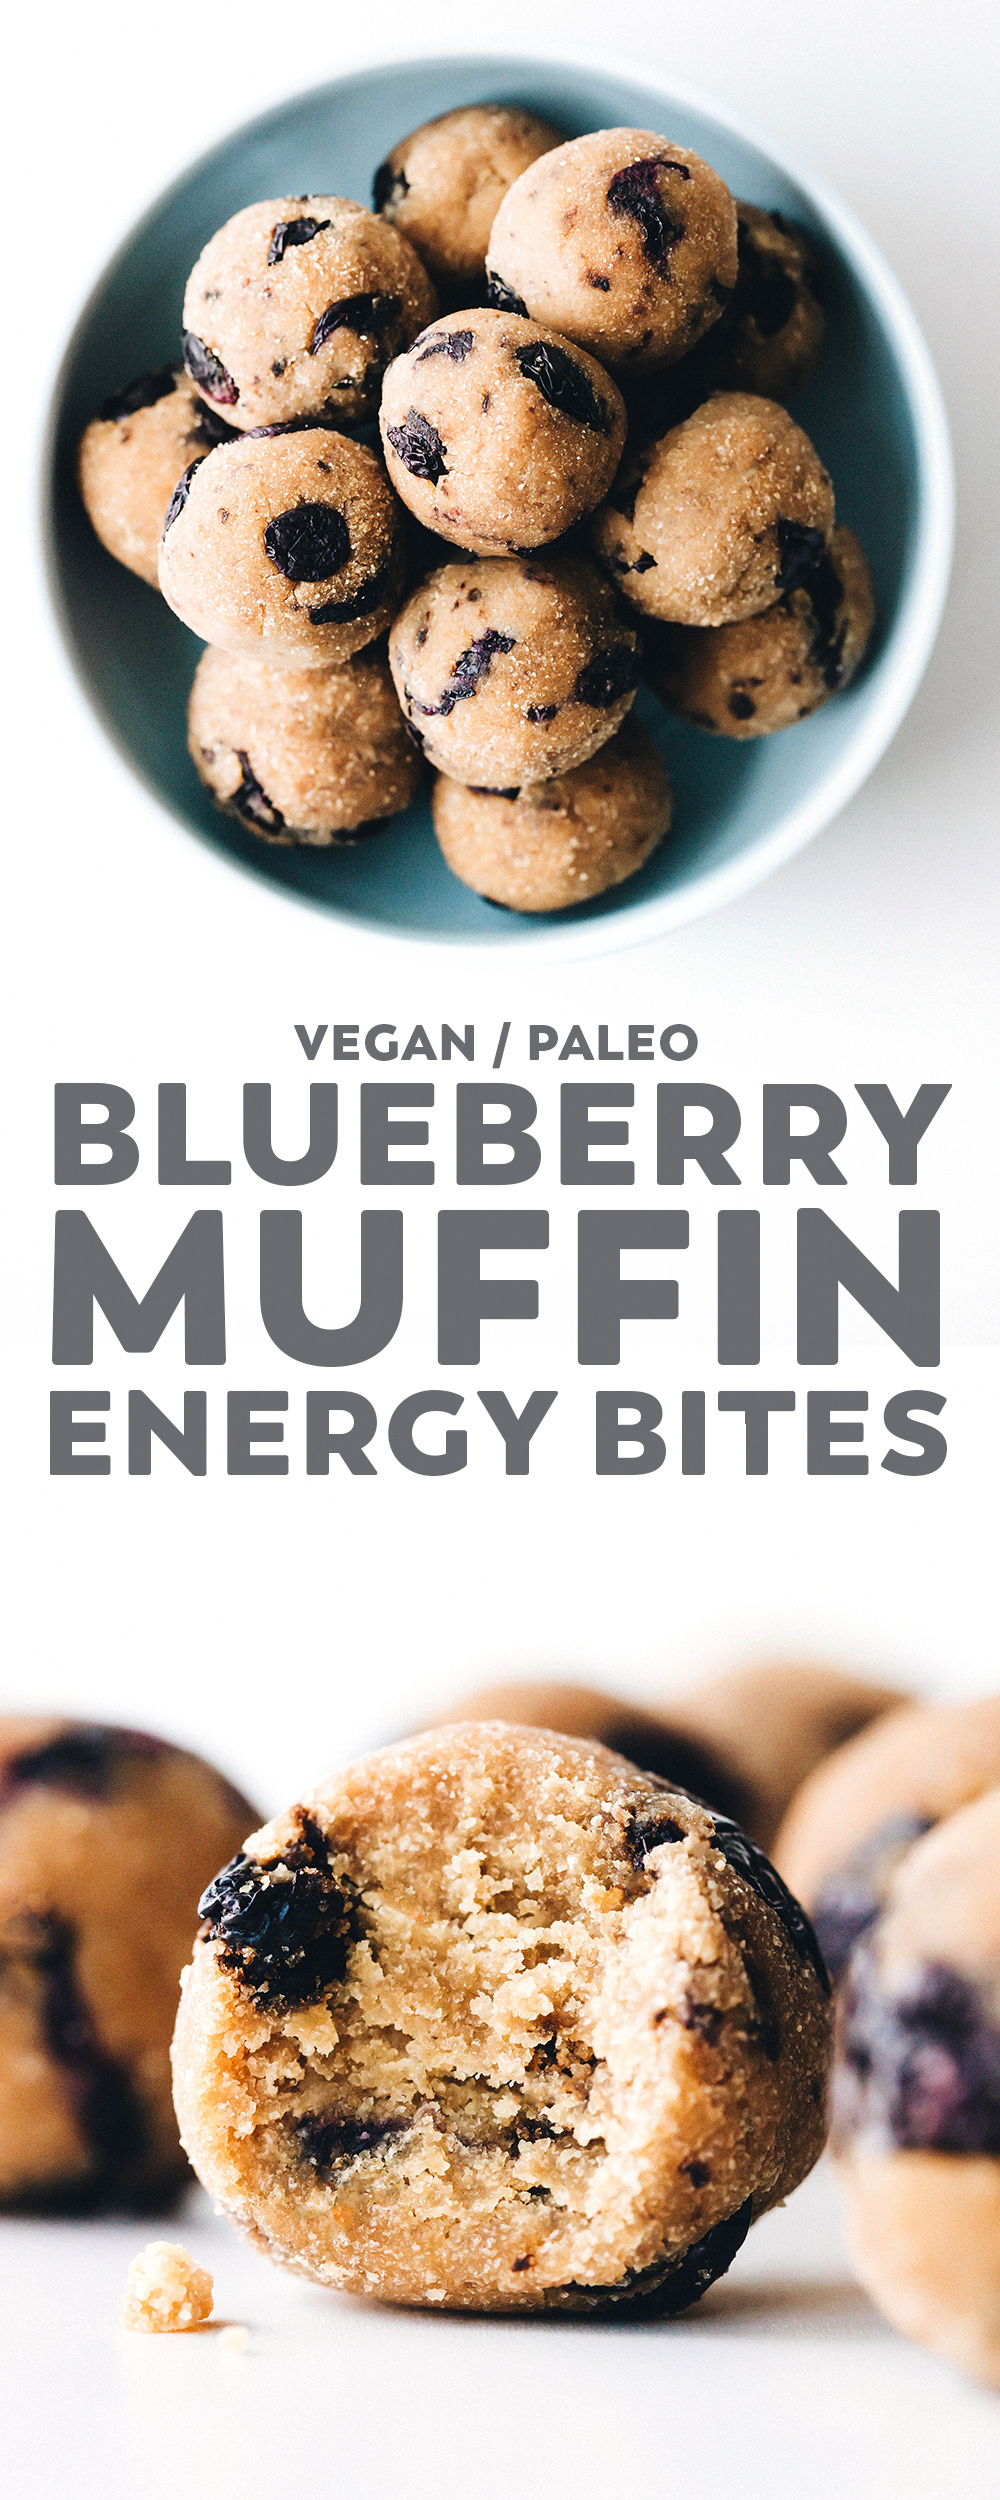 Blueberry Muffin Bites Tasty little balls of blueberry muffin that are unbaked but still fluffy like cake and healthy too. Plus an easy trick for dried blueberries in the oven! via @feastingonfruit